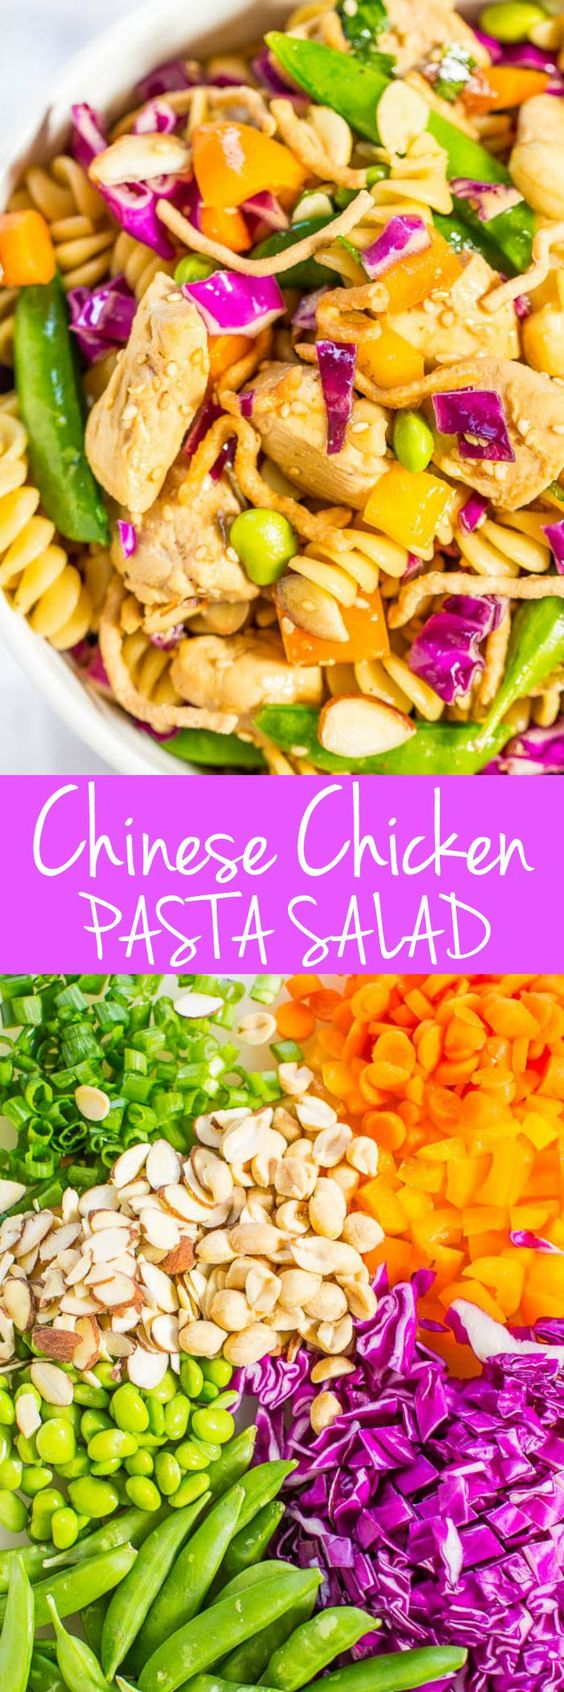 Chinese Chicken Pasta Salad Recipe via Averie Cooks - Big juicy chicken chunks and texture galore from the rainbow of crispy veggies! Fast, easy, fresh and healthy!! Great for picnics, potlucks, and easy dinners!! Easy Pasta Salad Recipes - The BEST Yummy Barbecue Side Dishes, Potluck Favorites and Summer Dinner Party Crowd Pleasers